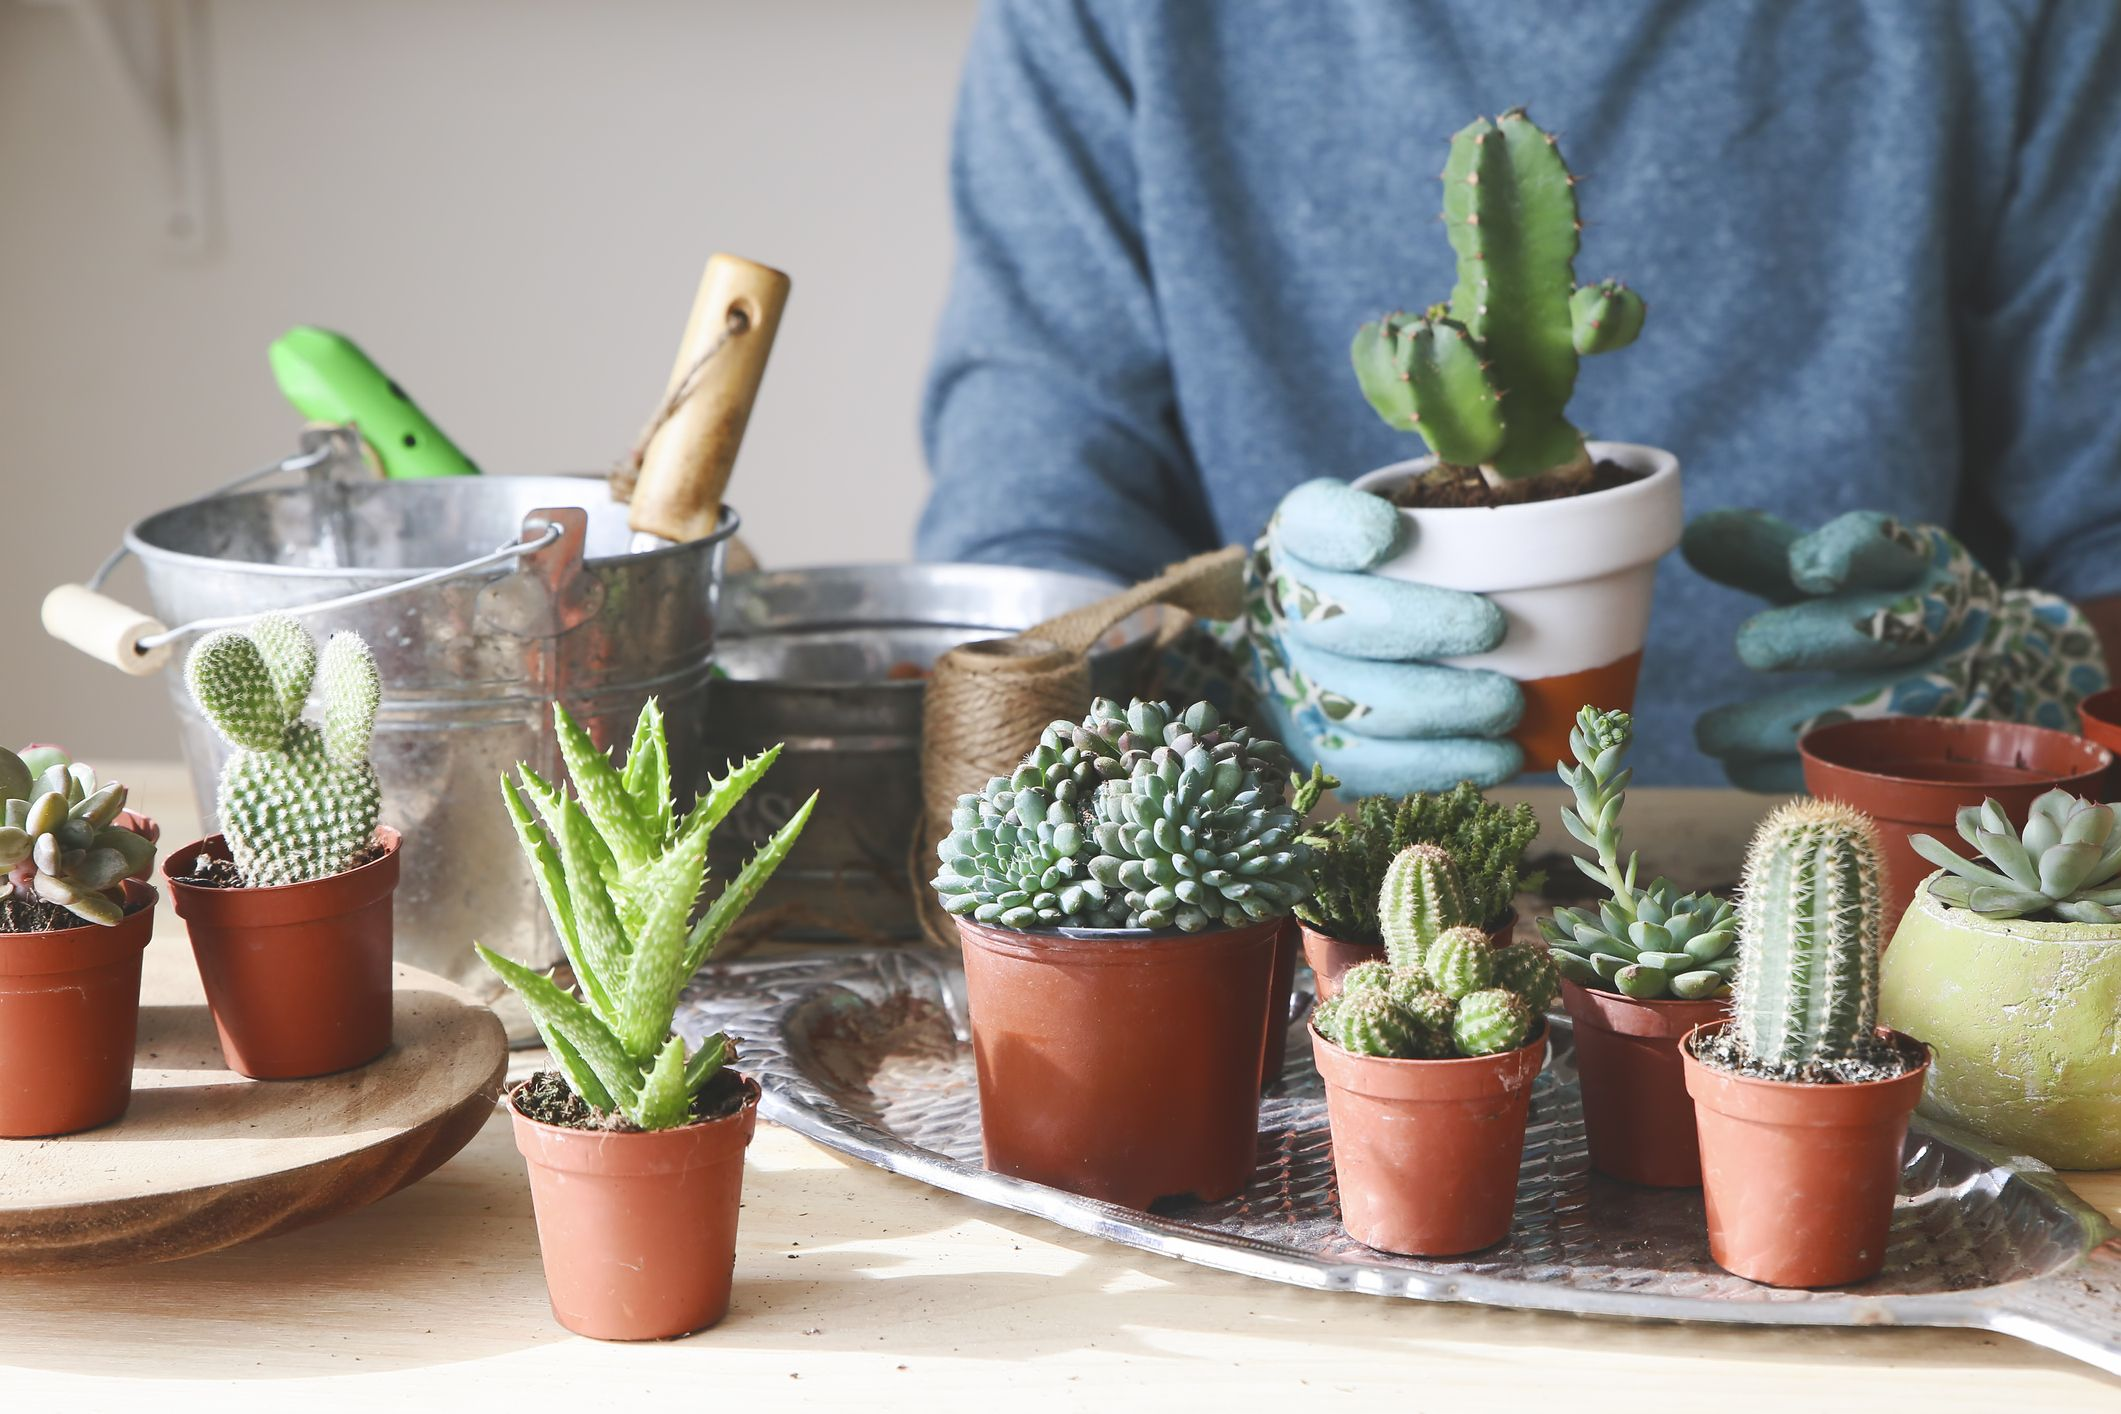 8 things you may not know about cactus plants